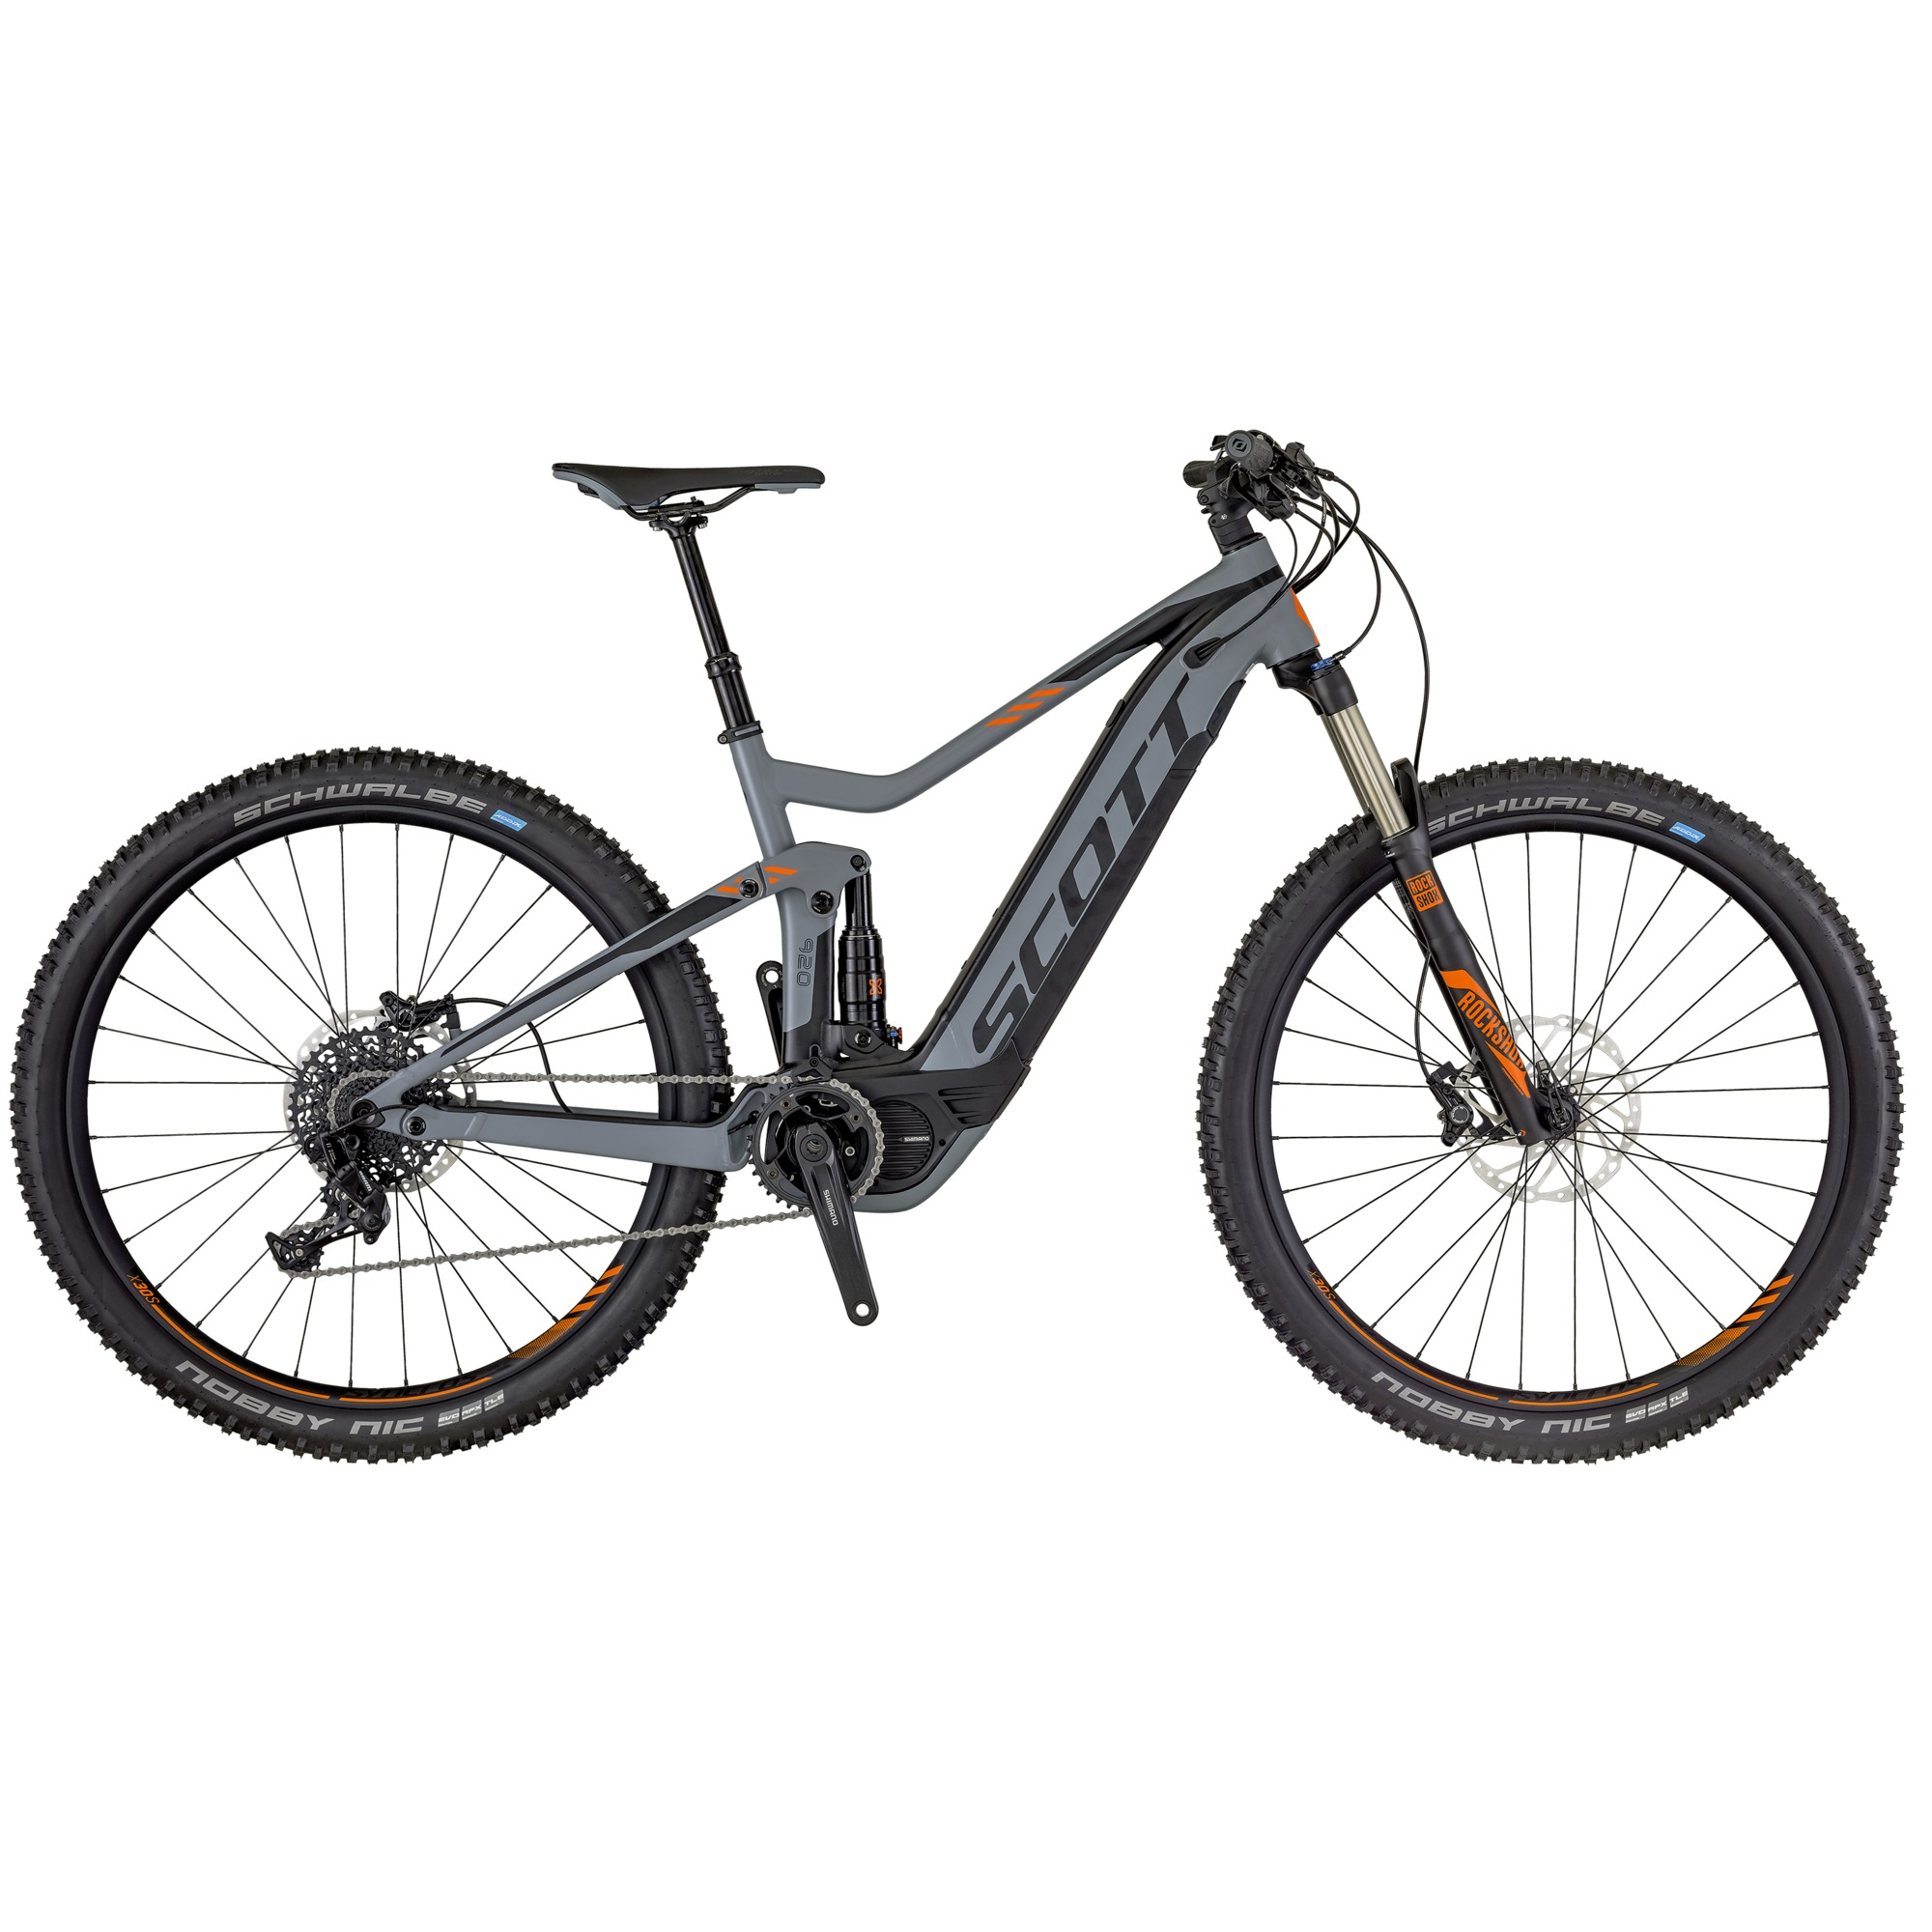 SCOTT E-Genius 920 Bike XL - Zweirad Homann